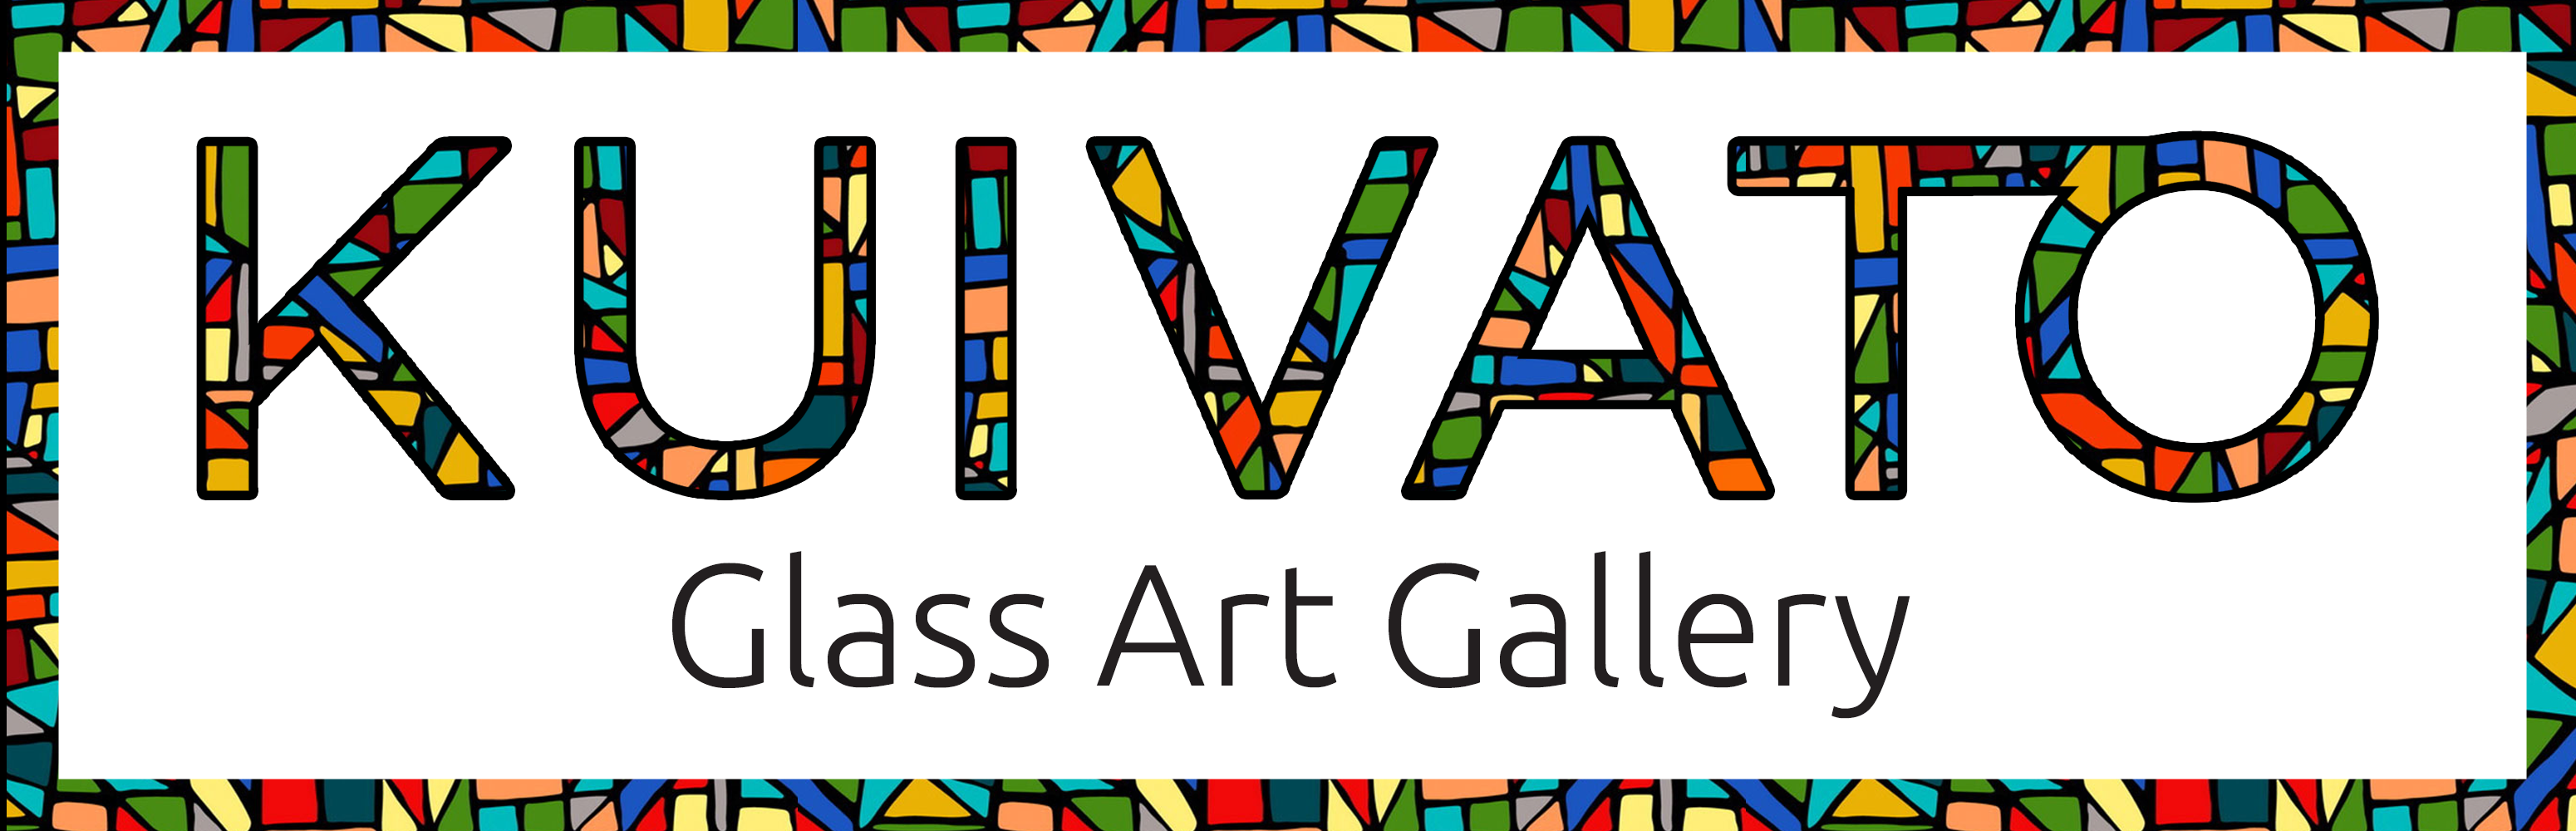 Oldest Art Gallery In Sedona, Kuivato Glass Art Gallery, Opens New Location In Scottsdale Fashion Square Mall